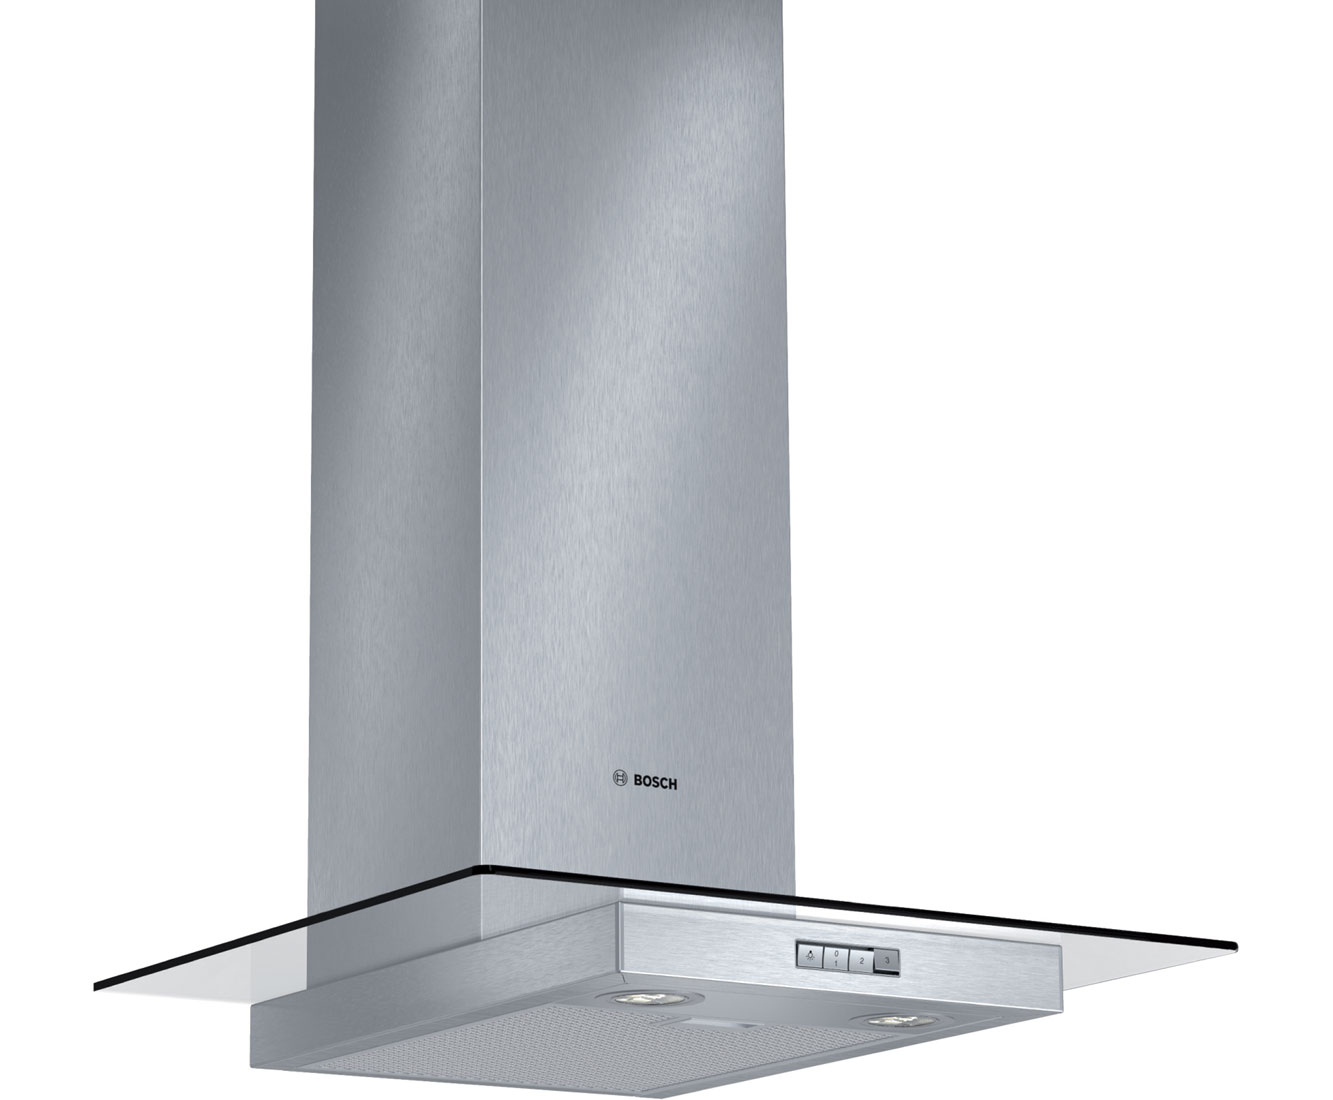 Image of Bosch Serie 4 DWA064W50B Integrated Cooker Hood in Brushed Steel